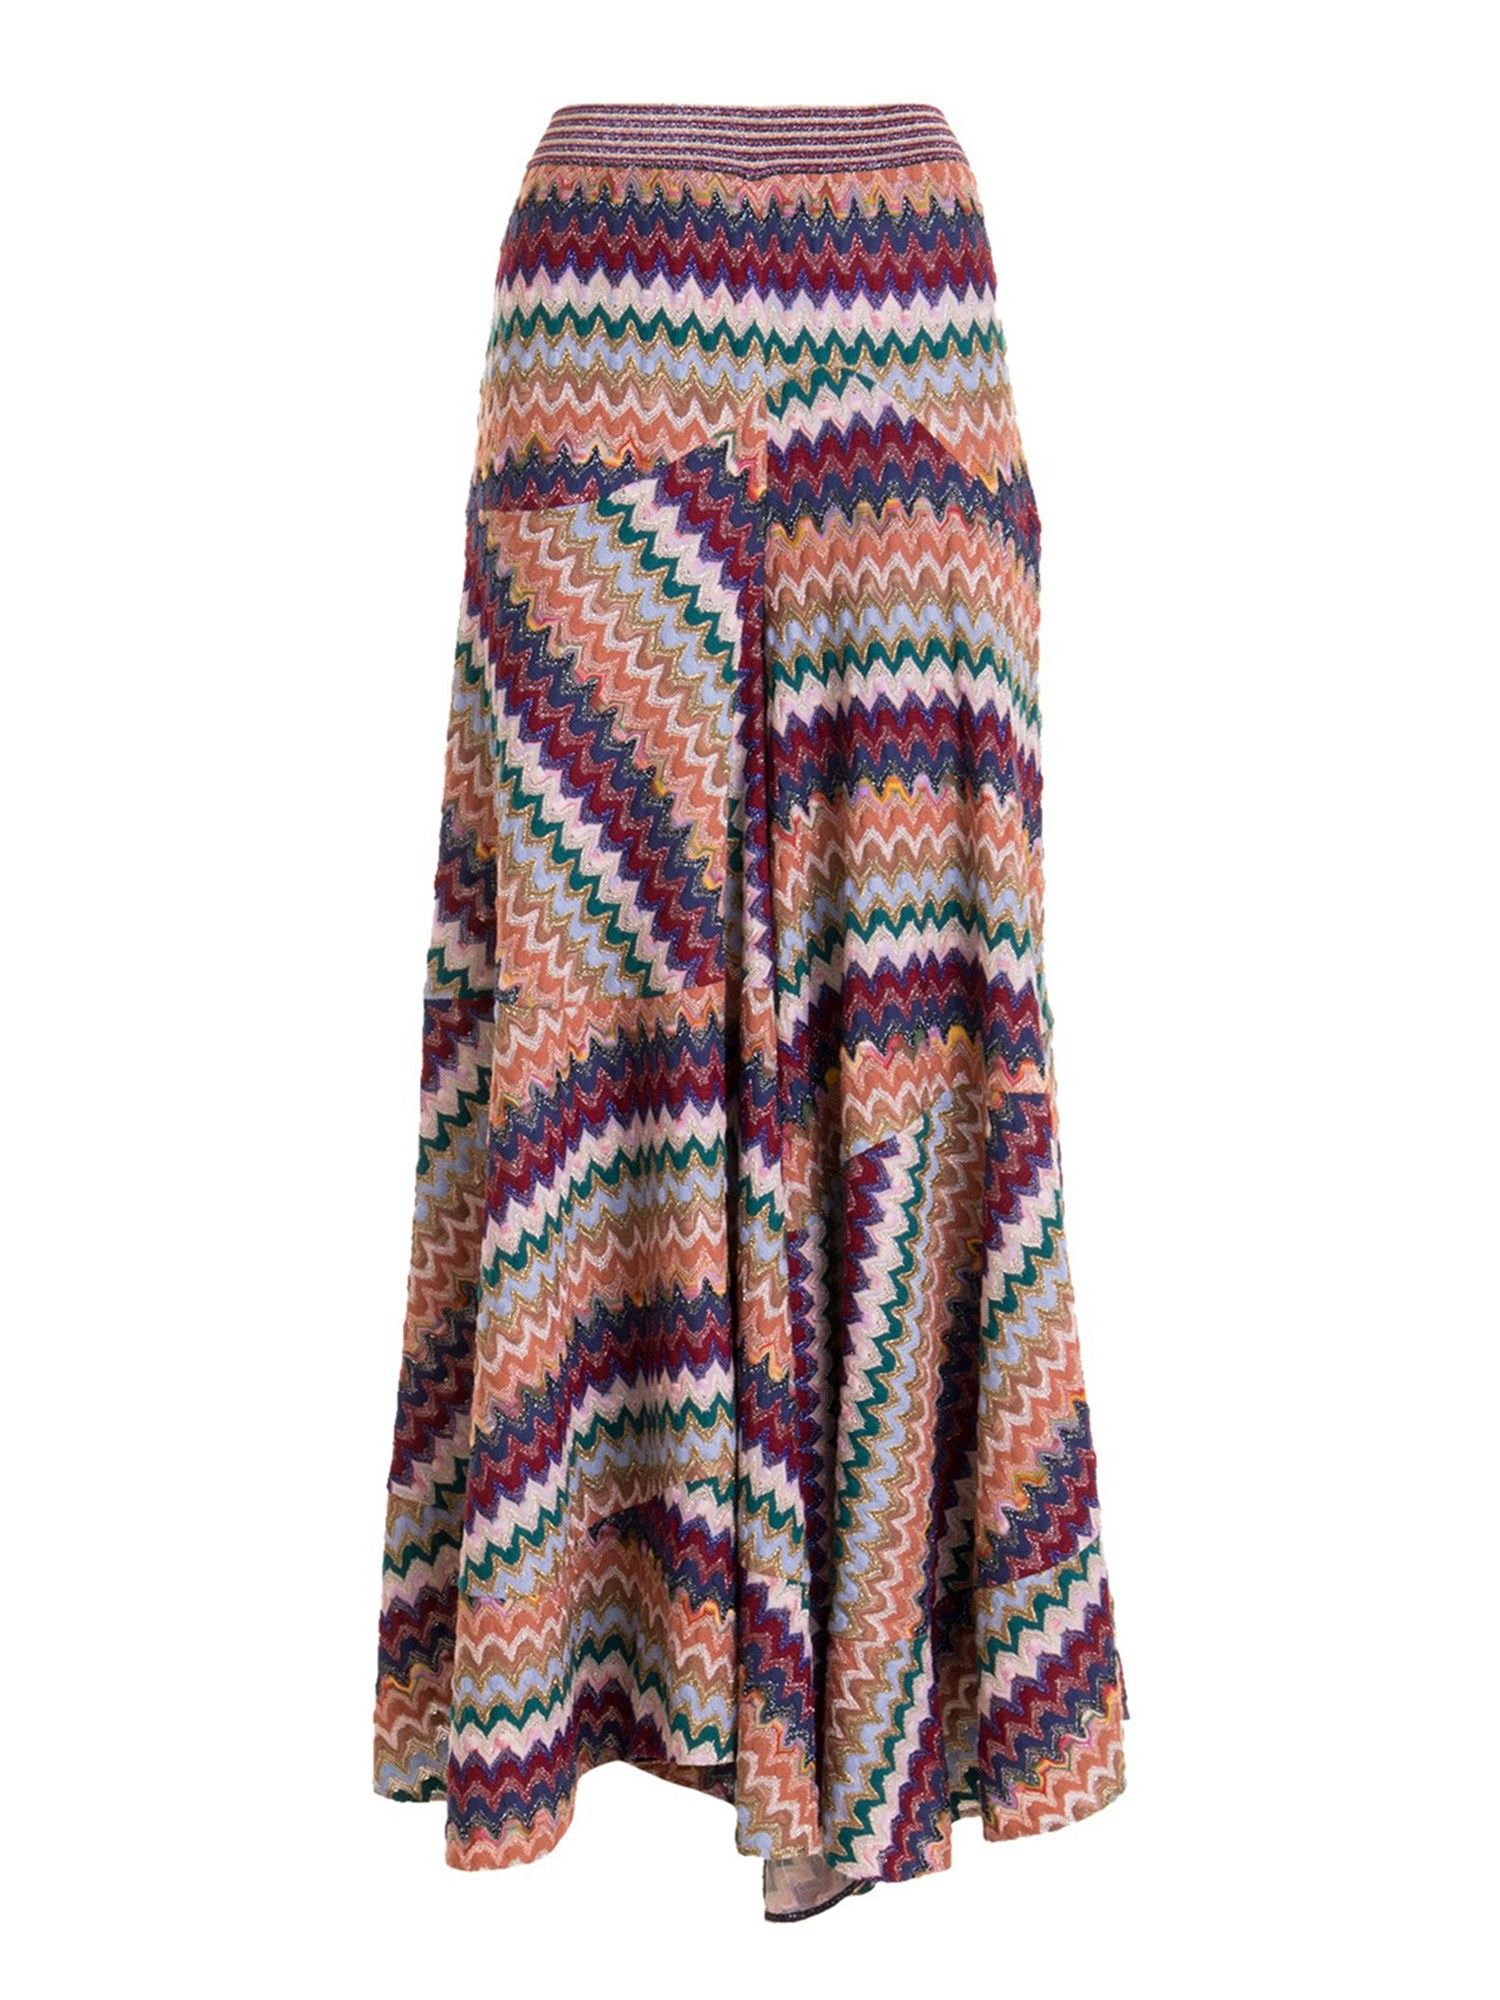 MISSONI CHEVRON PATTERN LONG SKIRT